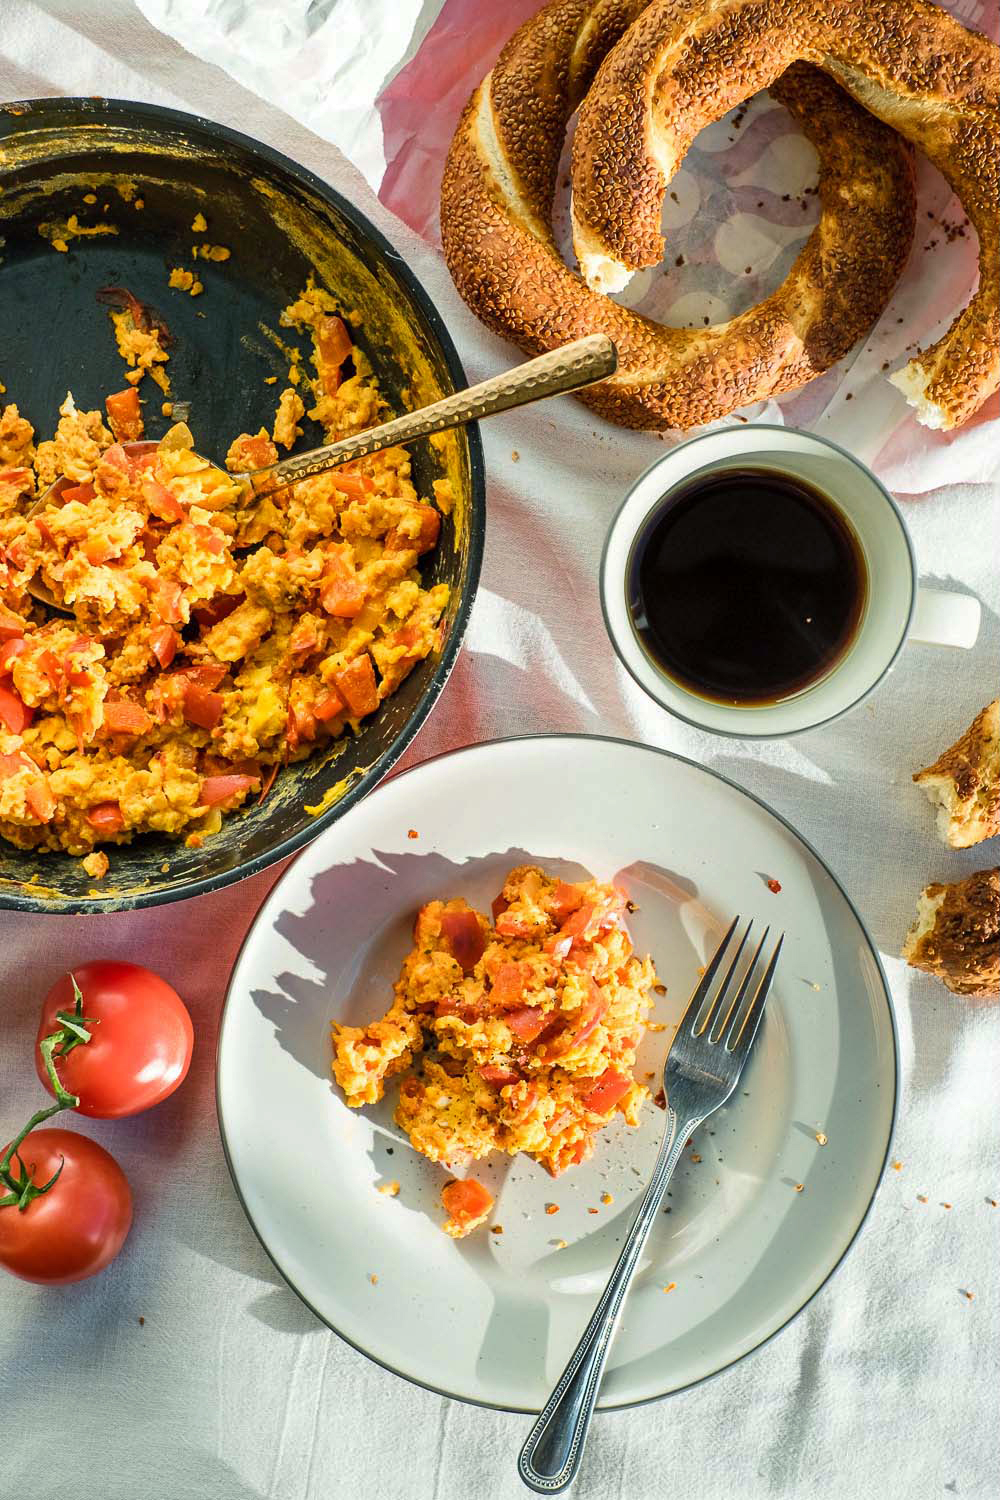 """Menemen is a traditional Turkish dish of eggs scrambled with tomatoes, peppers, and spices such as ground black pepper and chilli, cooked in olive oil. It is often served with """"simit"""" style bread."""